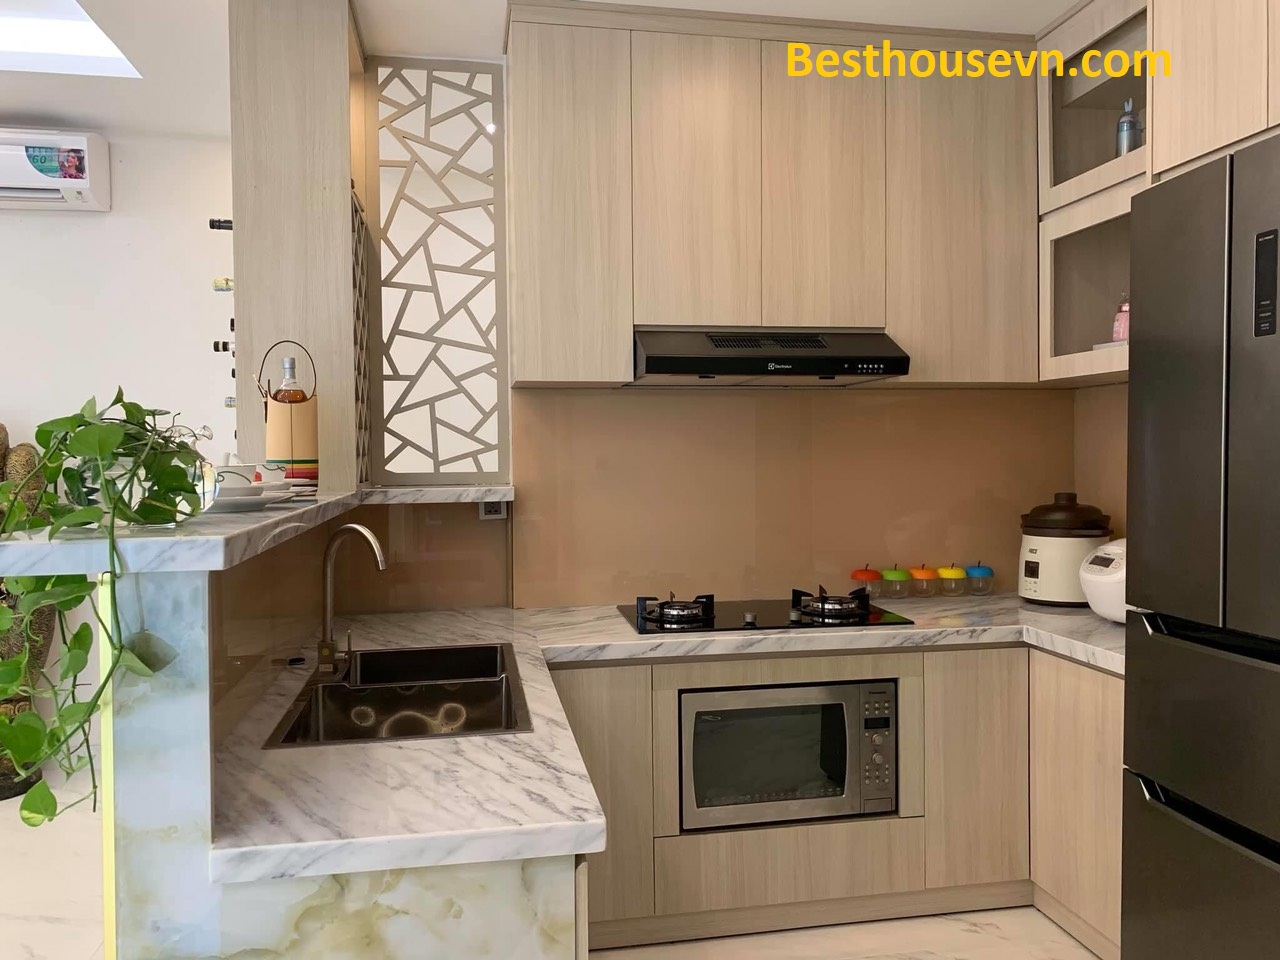 Mitown-89sqm-apartment-for-rent-in-phu-my-hung-district-7-hcmc-2